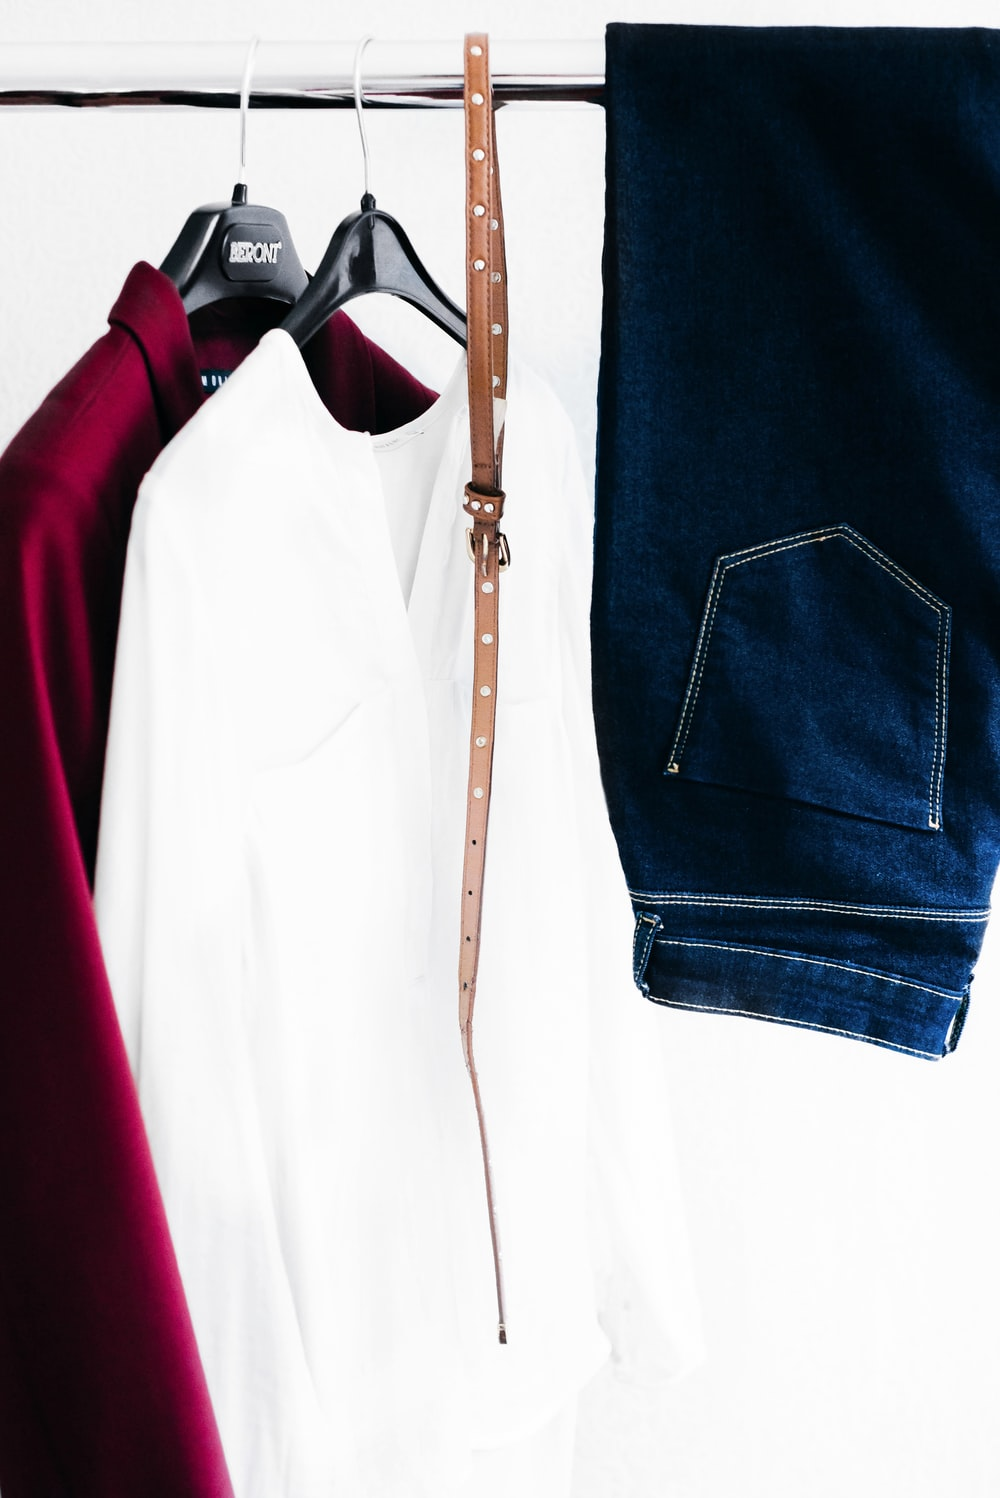 two white and red long-sleeved shirt with belt and jeans